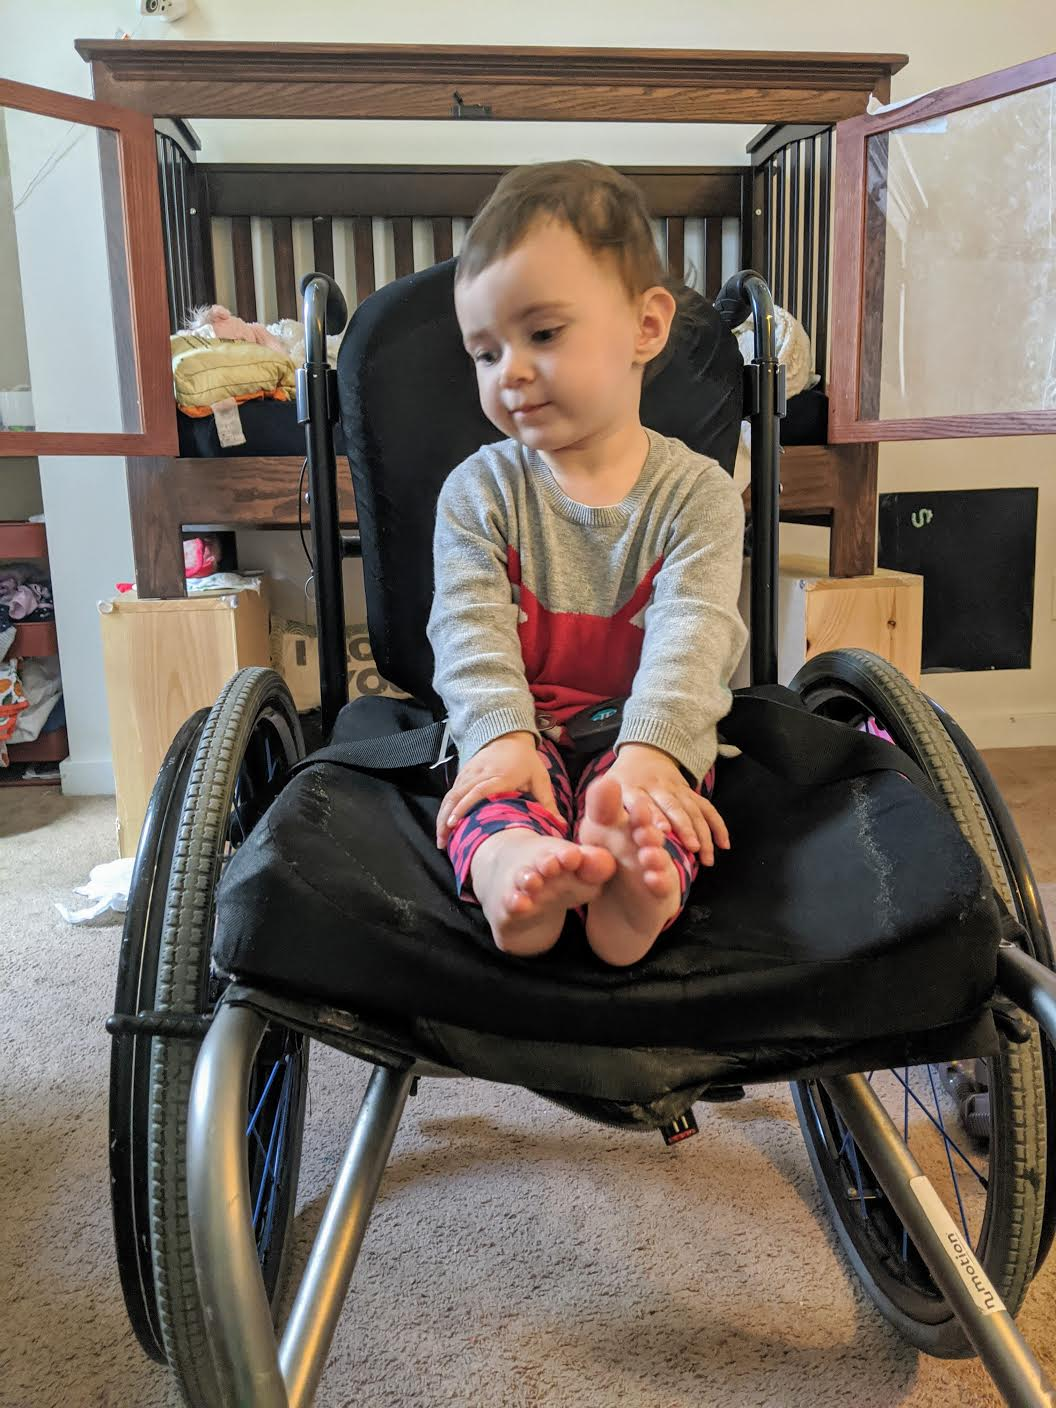 [Image Description: A young small girl sitting in a large wheelchair]